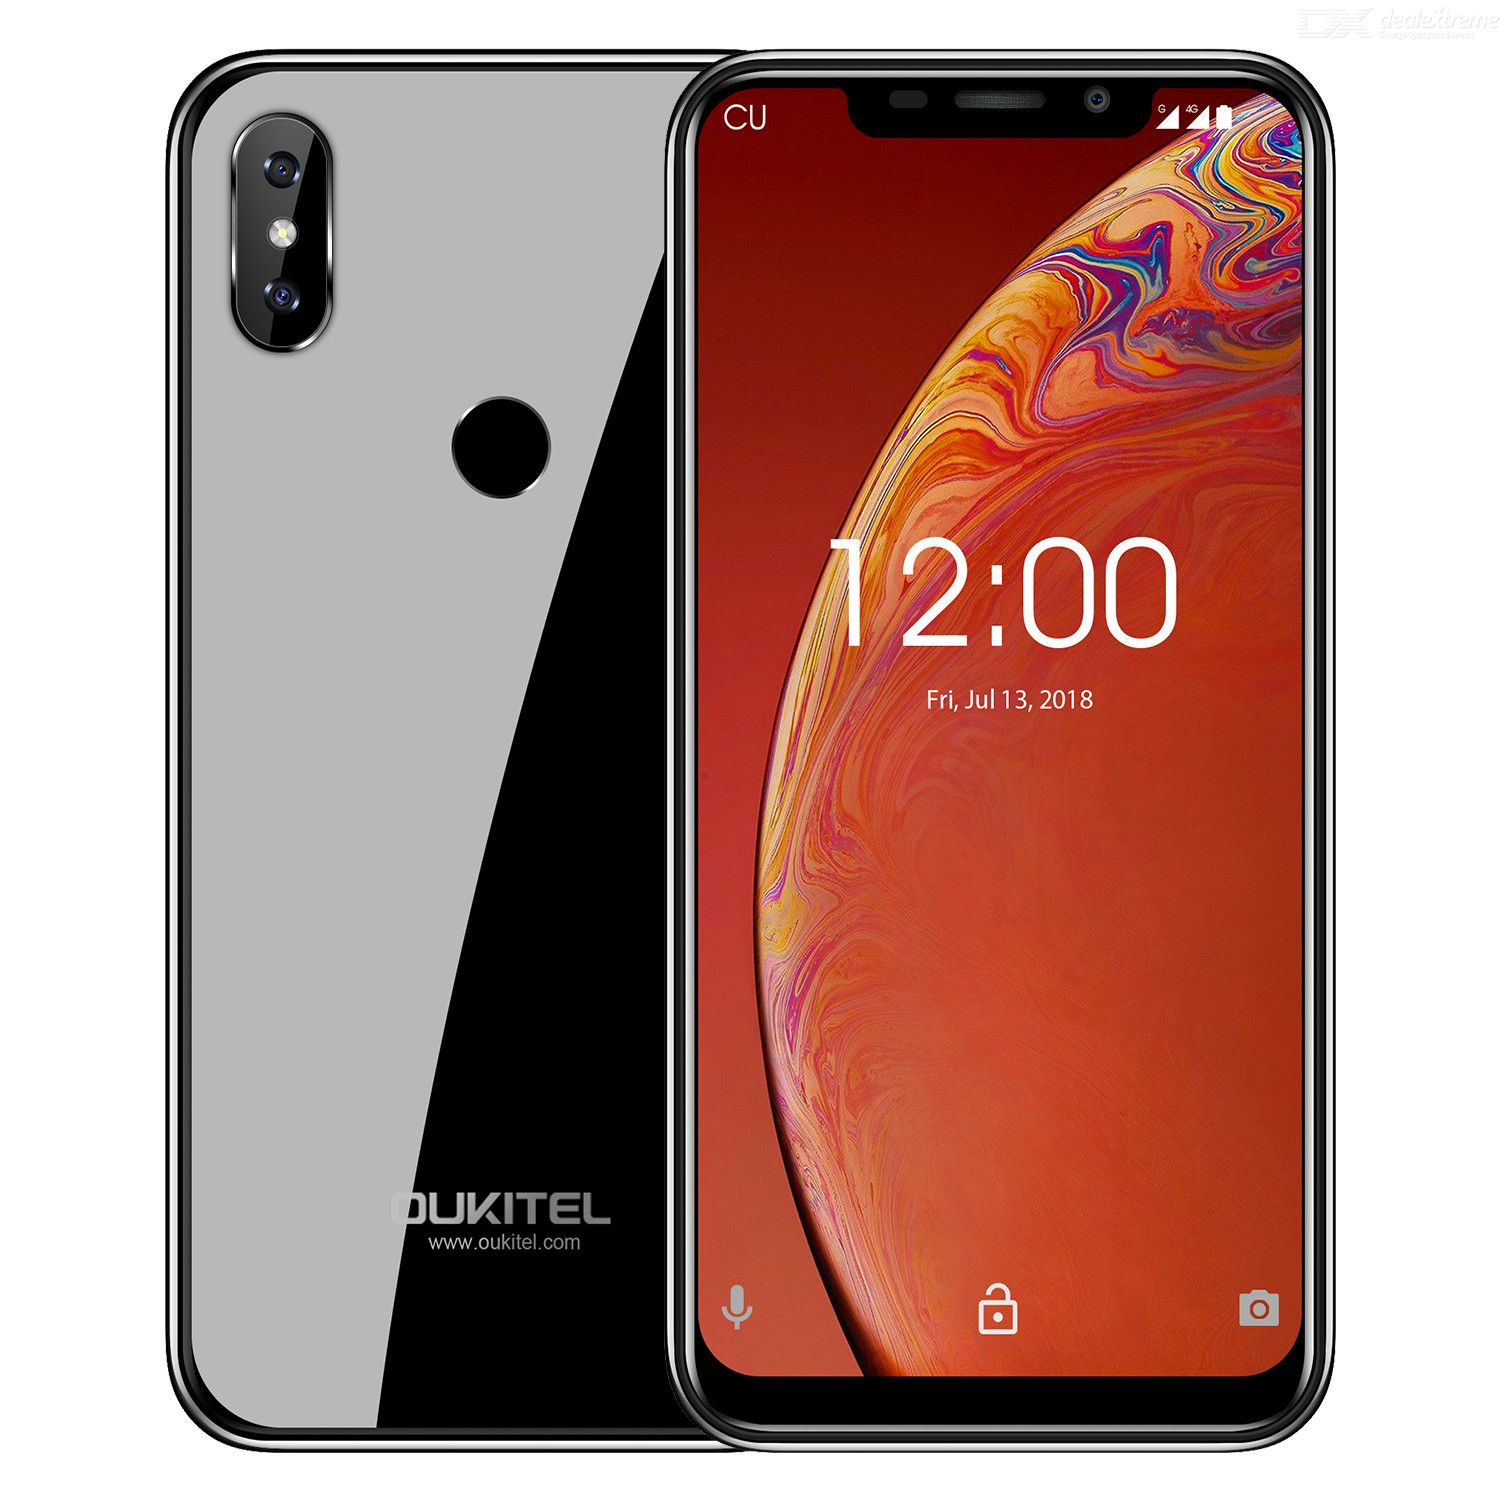 OUKITEL C13 Pro Newest Android 9.0 Smartphone, 6.18 Inch Screen 2GB RAM+16GB ROM 3000mAh with Face Unlocking